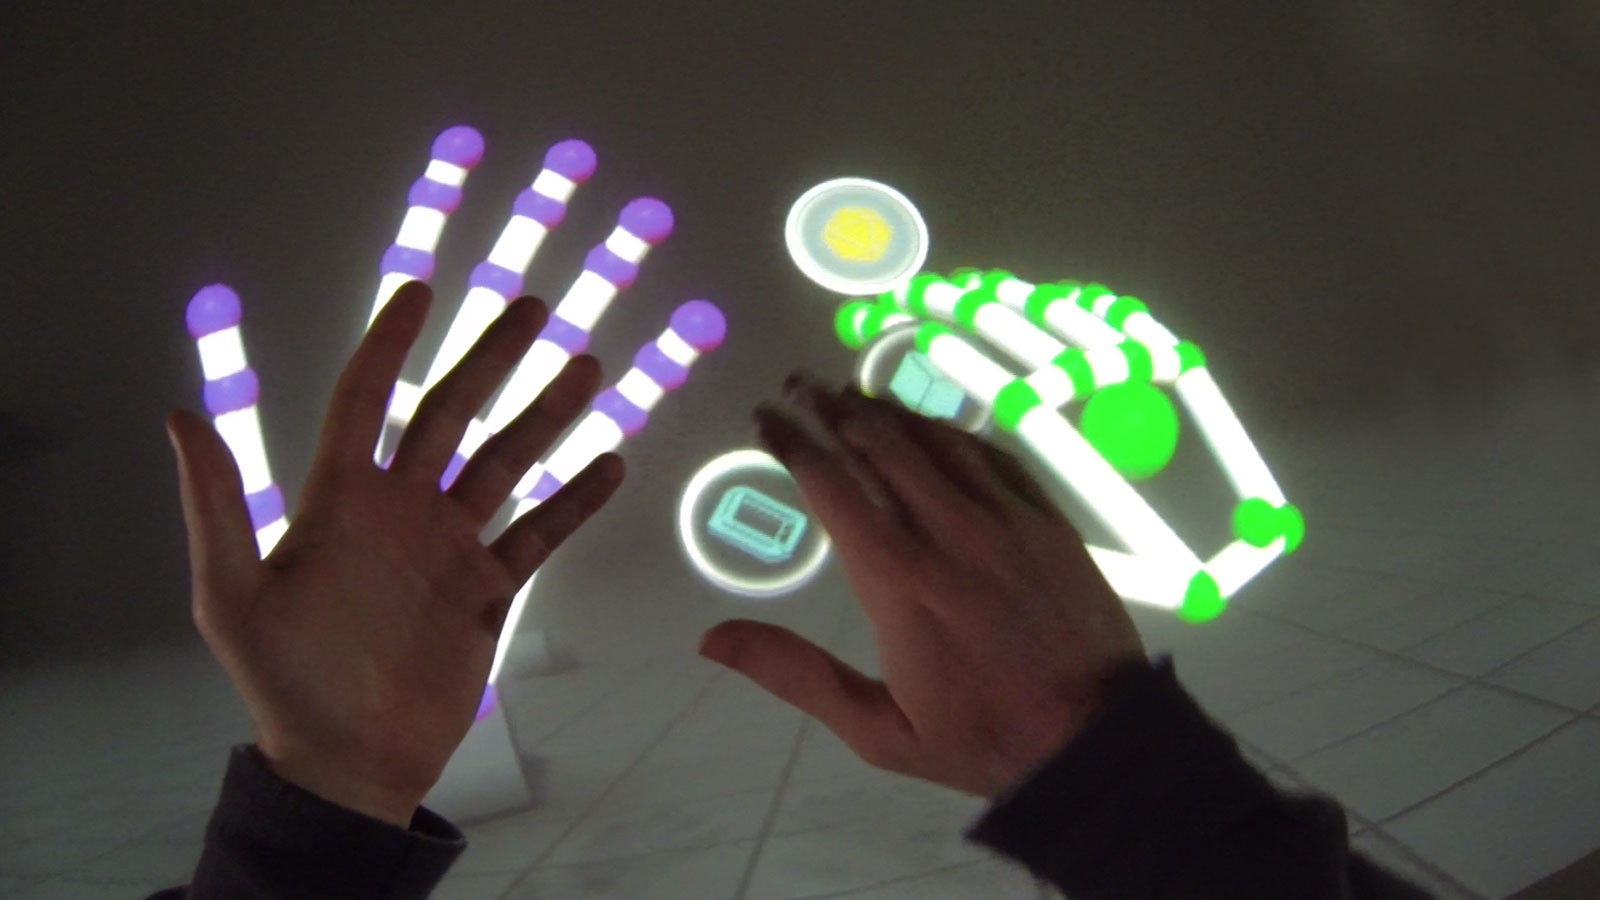 Real hands with VR hands